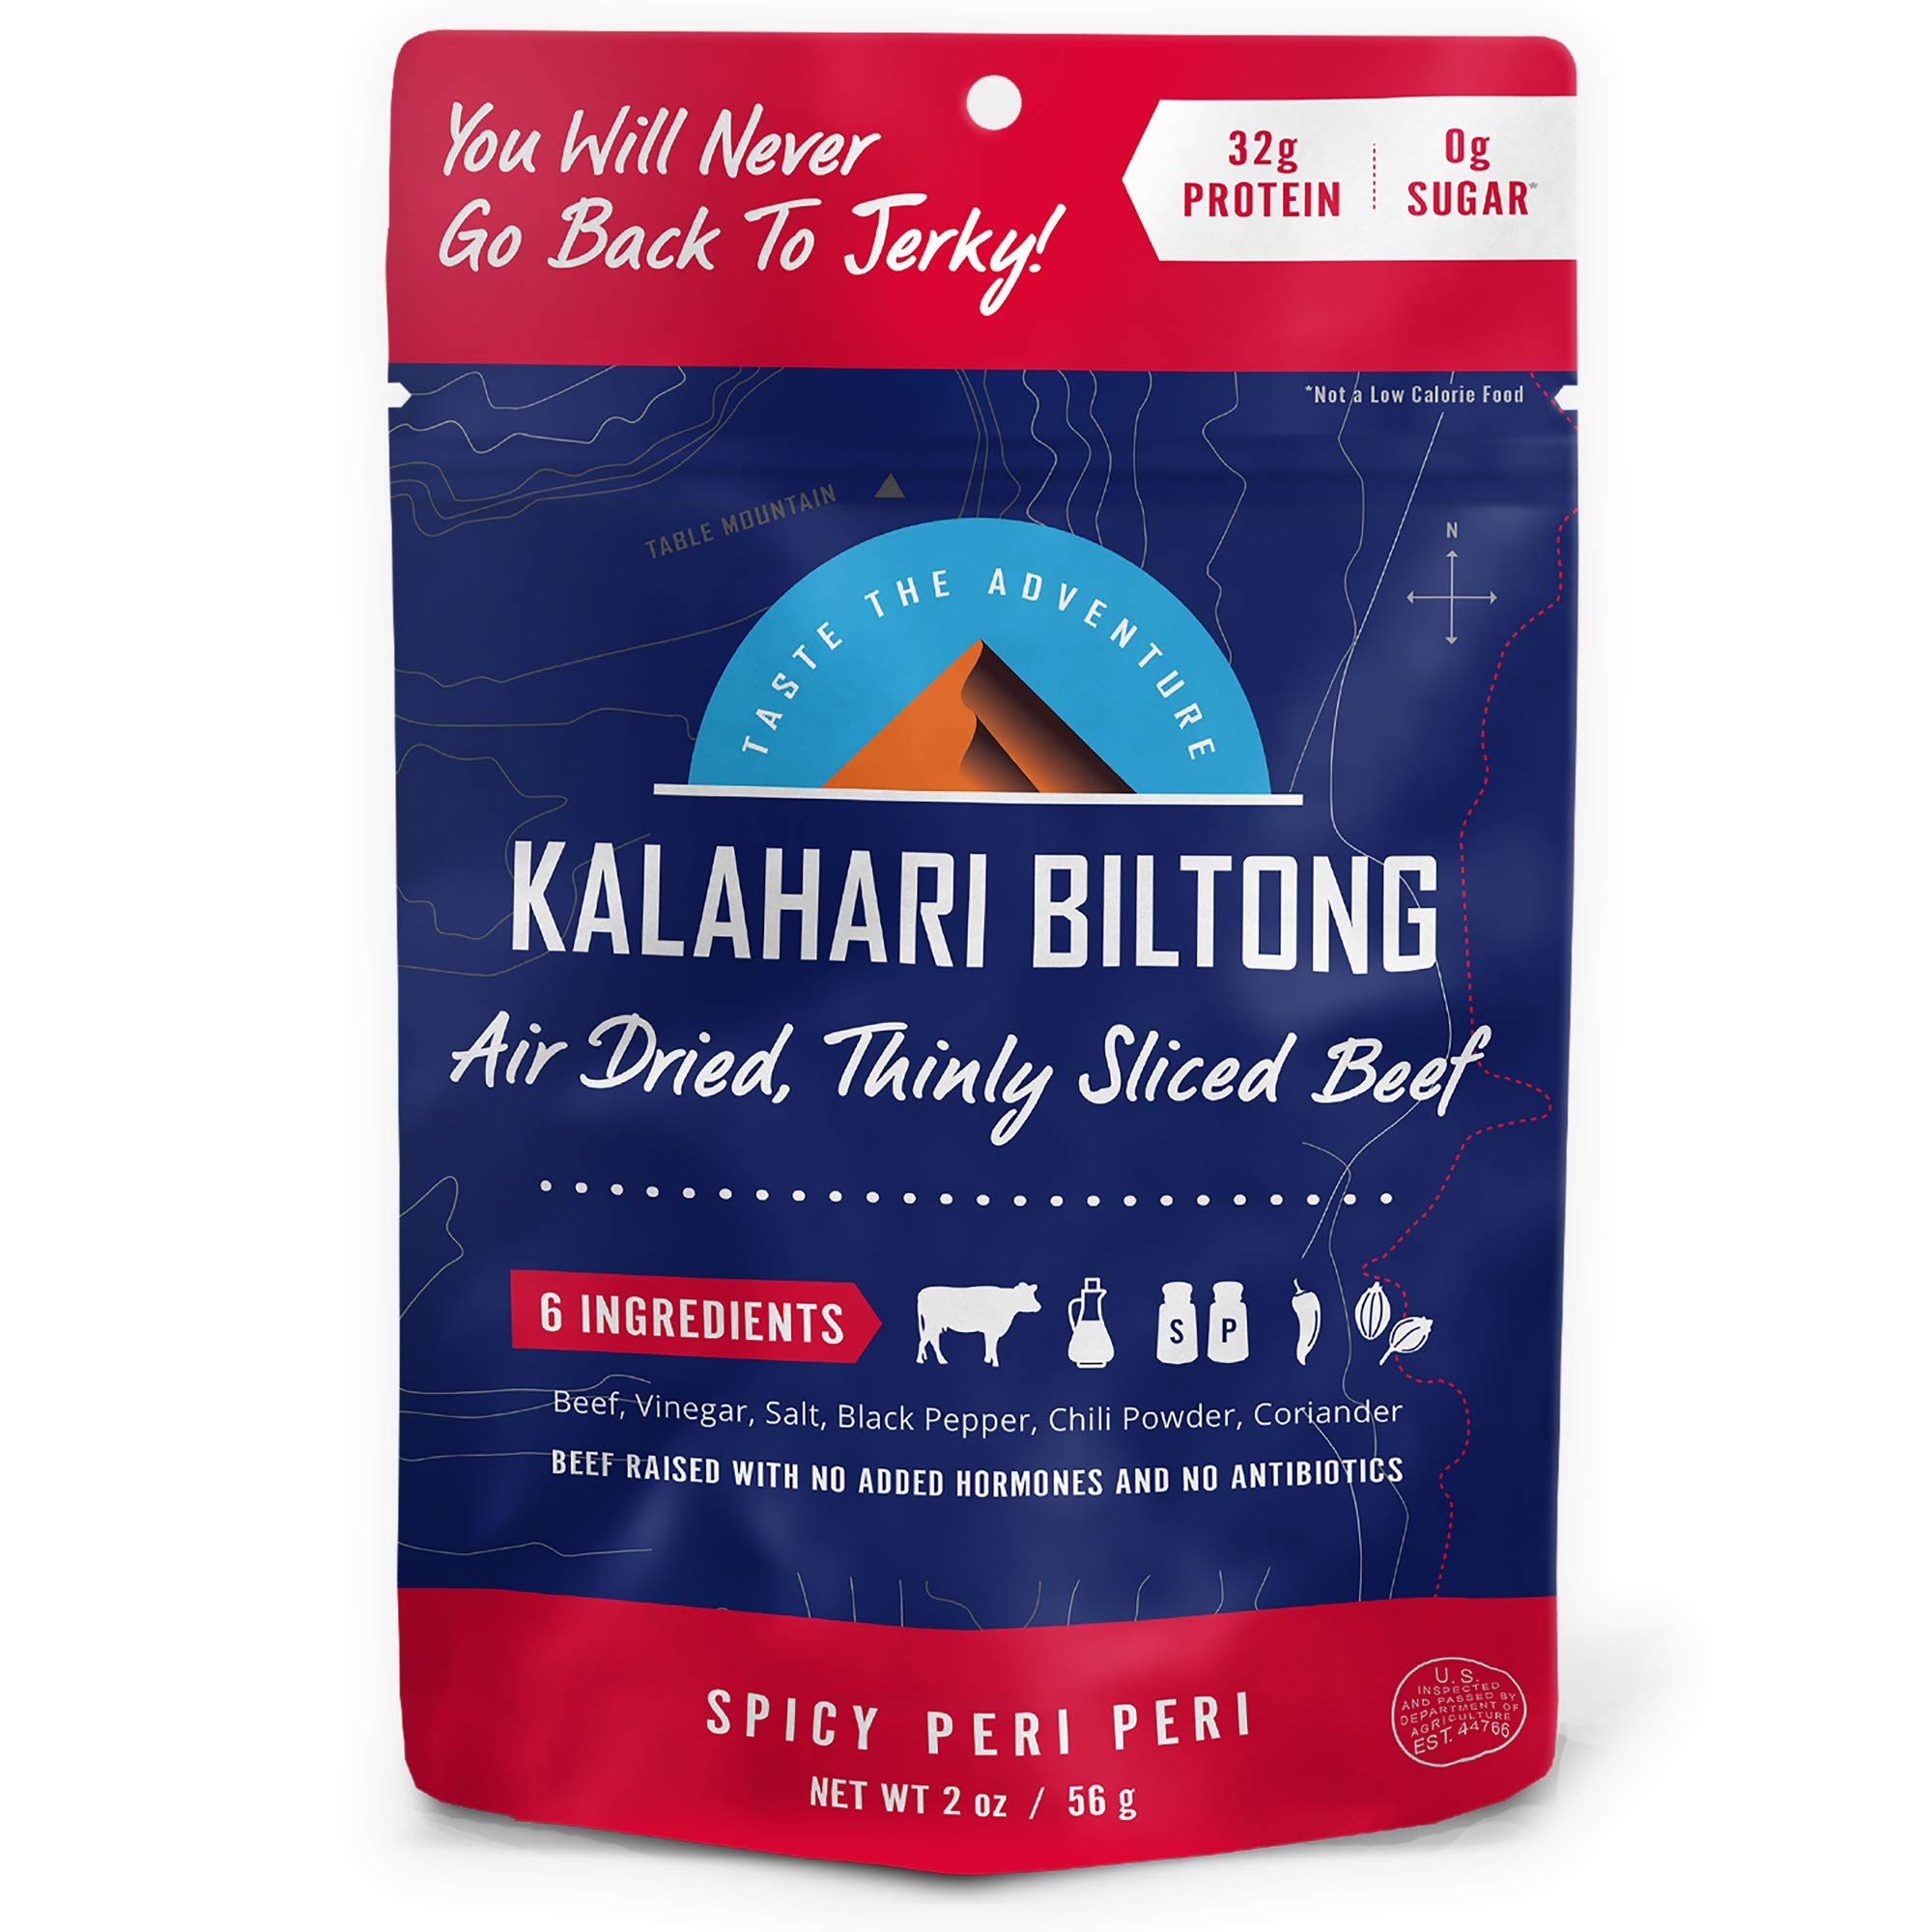 Kalahari Biltong | Air-Dried Thinly Sliced Beef | Spicy Peri Peri | 2oz (Pack of 1) | Zero Sugar | Keto & Paleo | Gluten Free | Better than Jerky